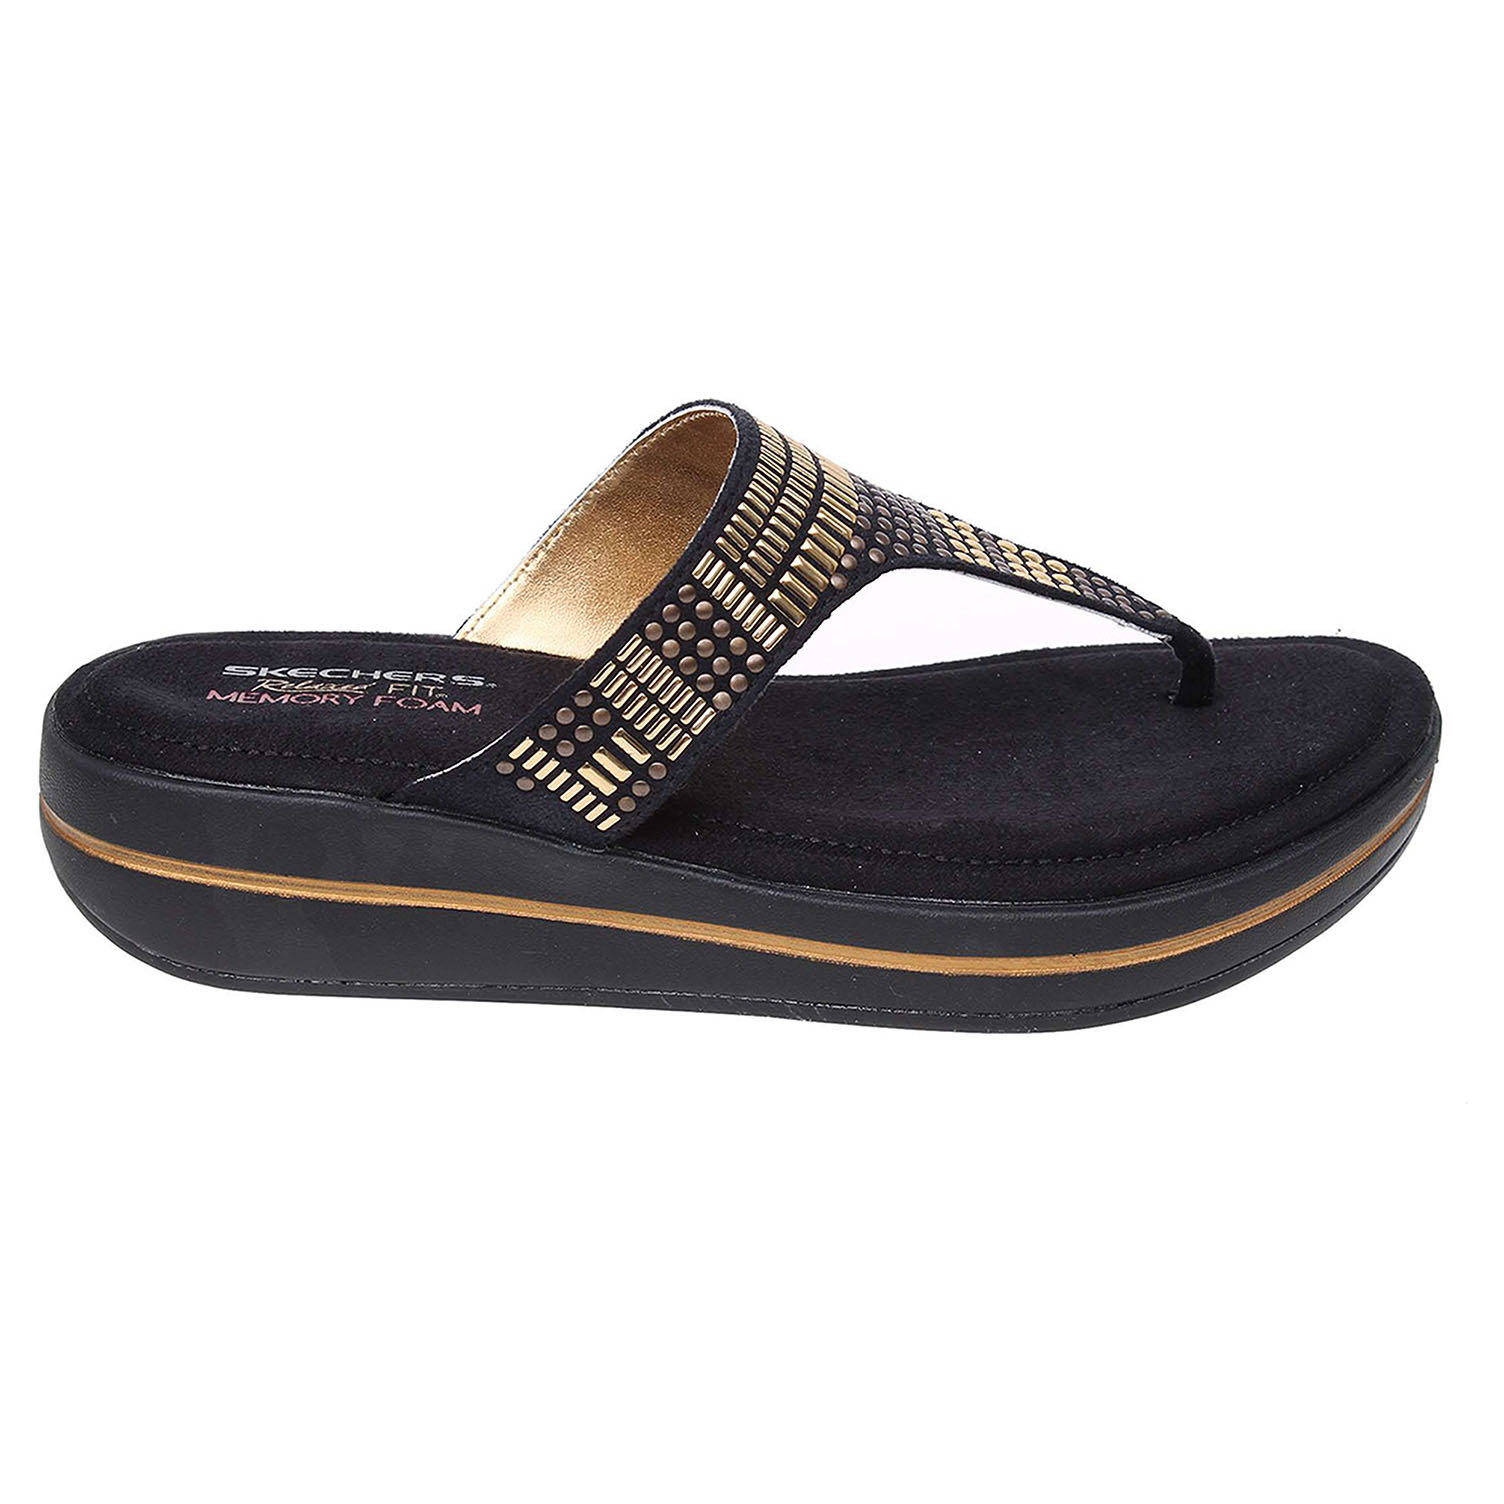 Skechers Studly black-gold 40